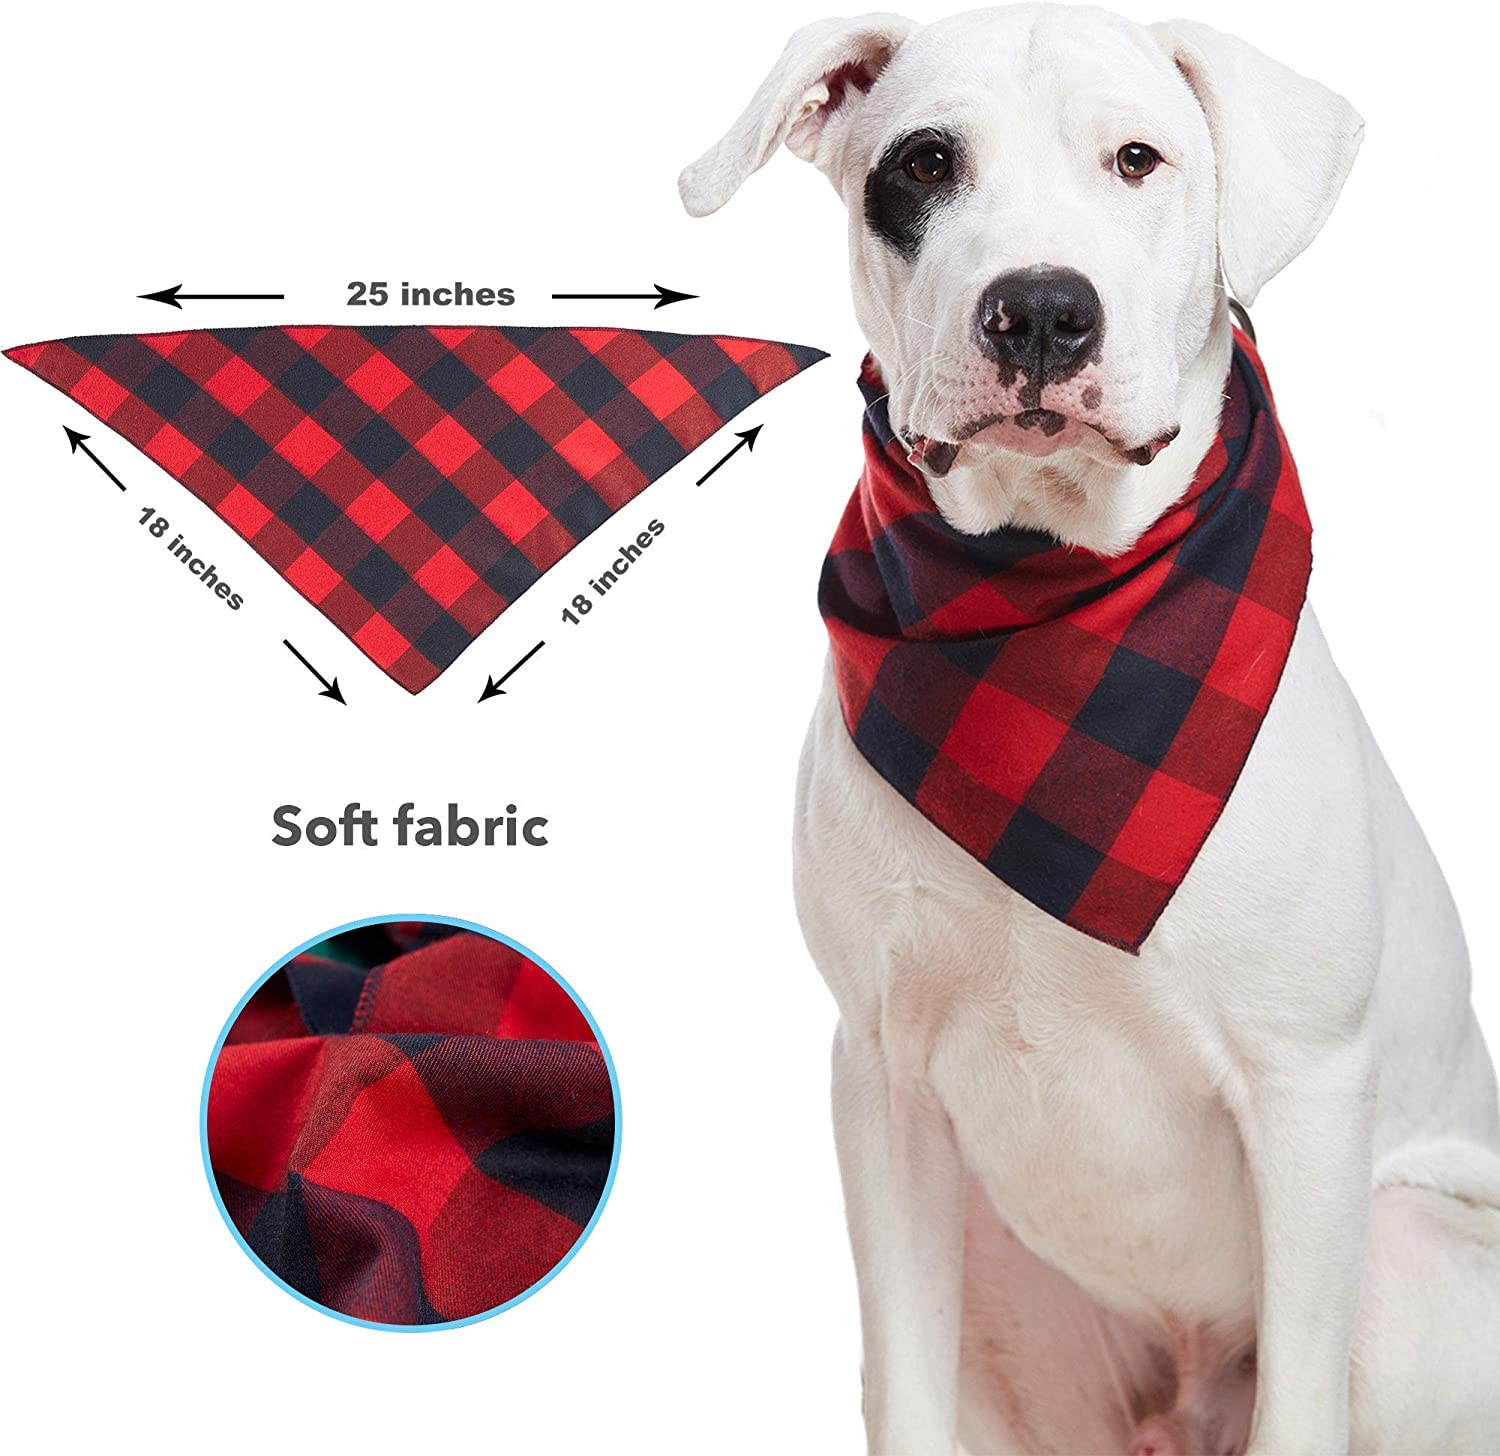 Odi Style Buffalo Plaid Dog Bandana 4 Pack - Cotton Bandanas Handkerchiefs Scarfs Triangle Bibs Accessories for Small Medium Large Dogs Puppies Pets, Black and White, Red, Green, Blue and Navy Blue : Pet Supplies